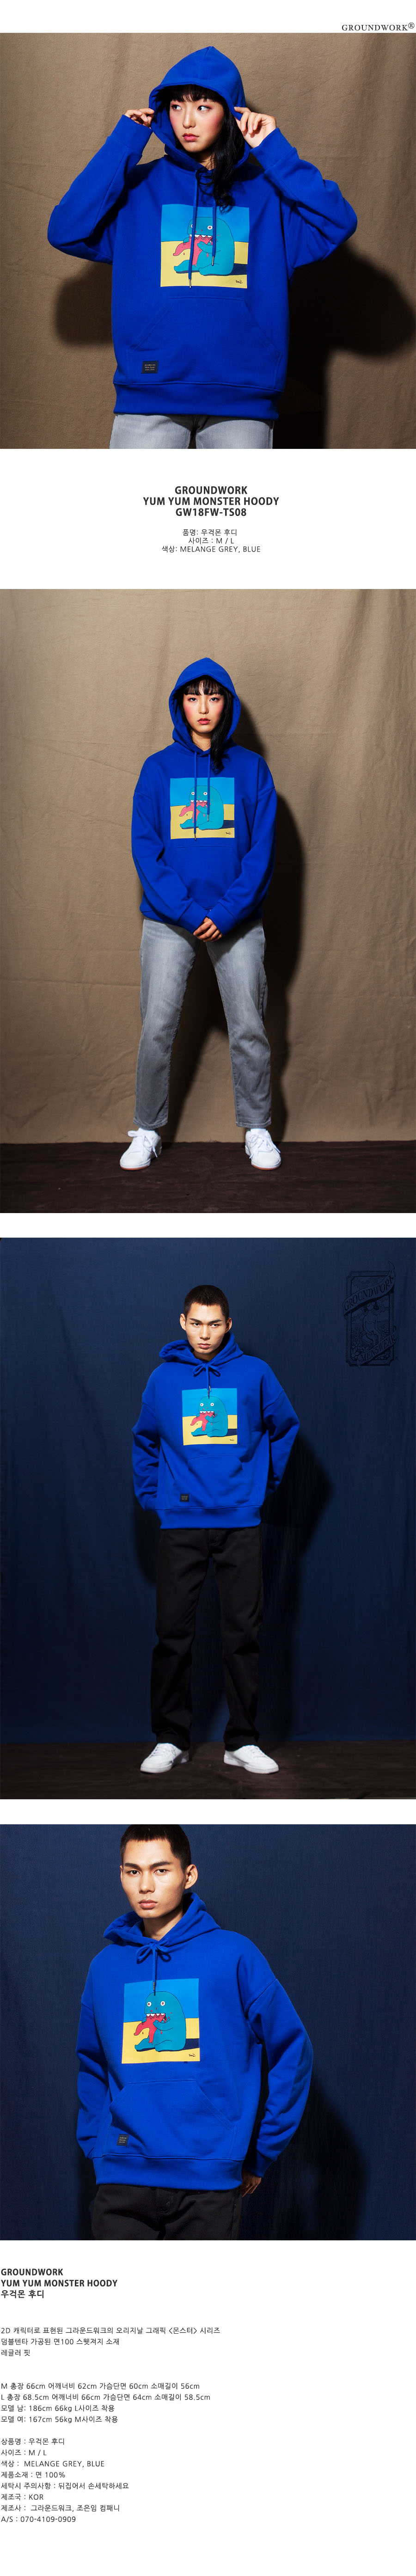 그라운드워크(GROUNDWORK) YUM YUM MONSTER HOODY in Blue